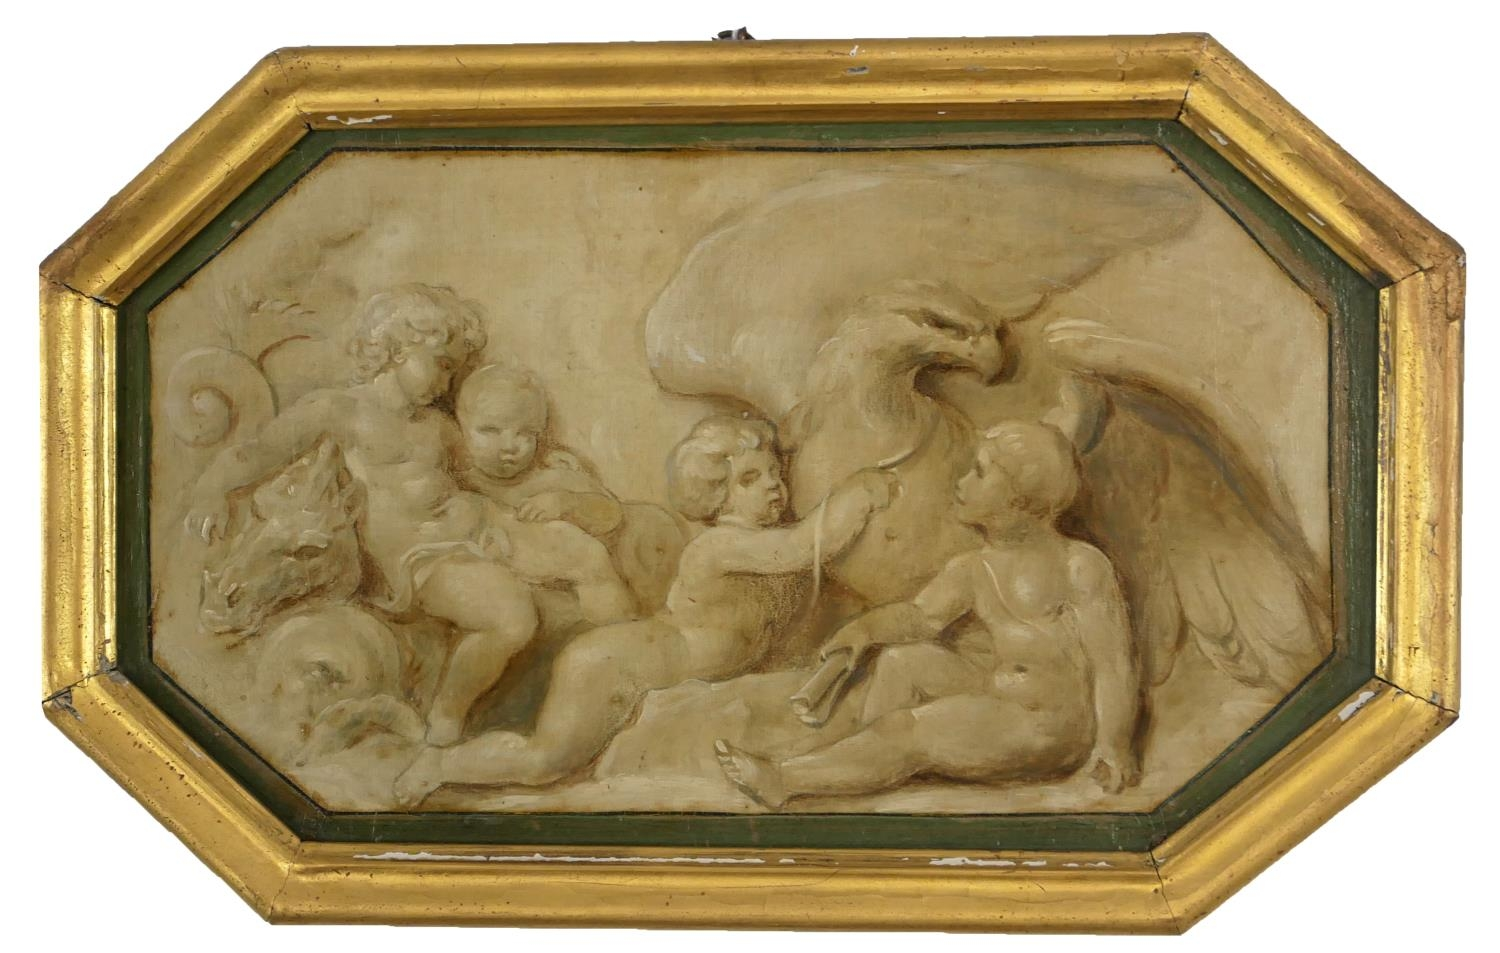 ATTRIBUTED TO JACOB DE WIT, AMSTERDAM, 1695 - 1754, A PAIR OF 18TH CENTURY OILS ON PANEL Putti - Image 3 of 9